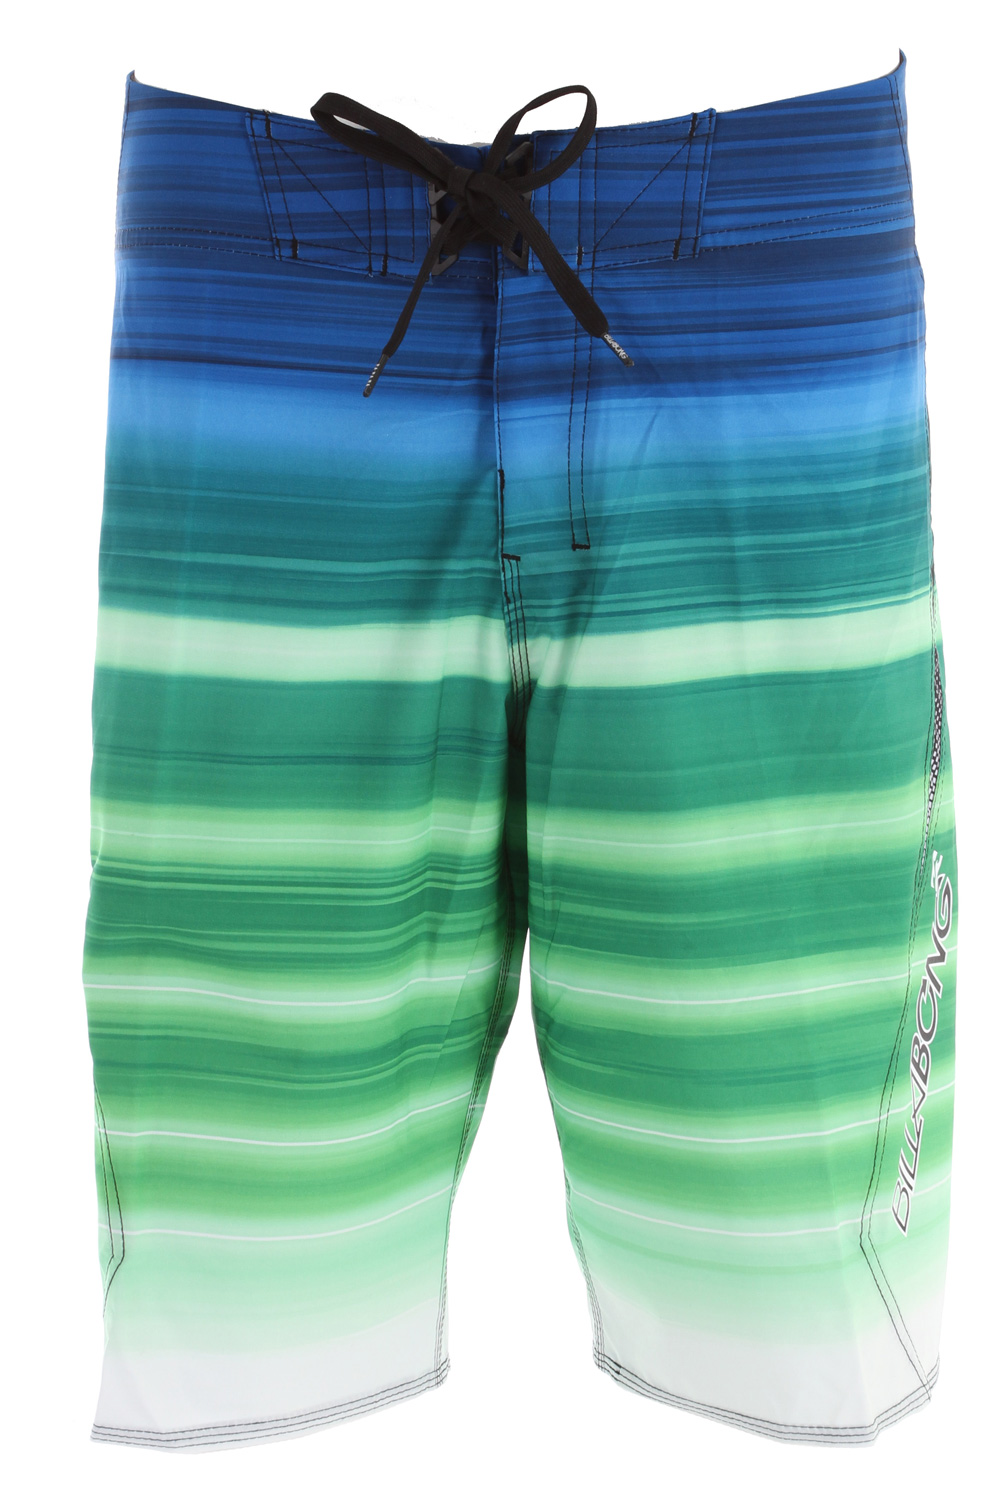 "Surf Key Features of the Billabong Flux Boardshorts: 22"" recycler zero gravity Parkso's Recycler Platinum X quad stretch boardshort with engineered strip print Ergonomic panels for superior stretch Screenprint details and Billabong logo Recycler ZG fabric light-weight with H2 Repel and epic stretch Made with 87% recycled polyester/13% spandex - $43.95"